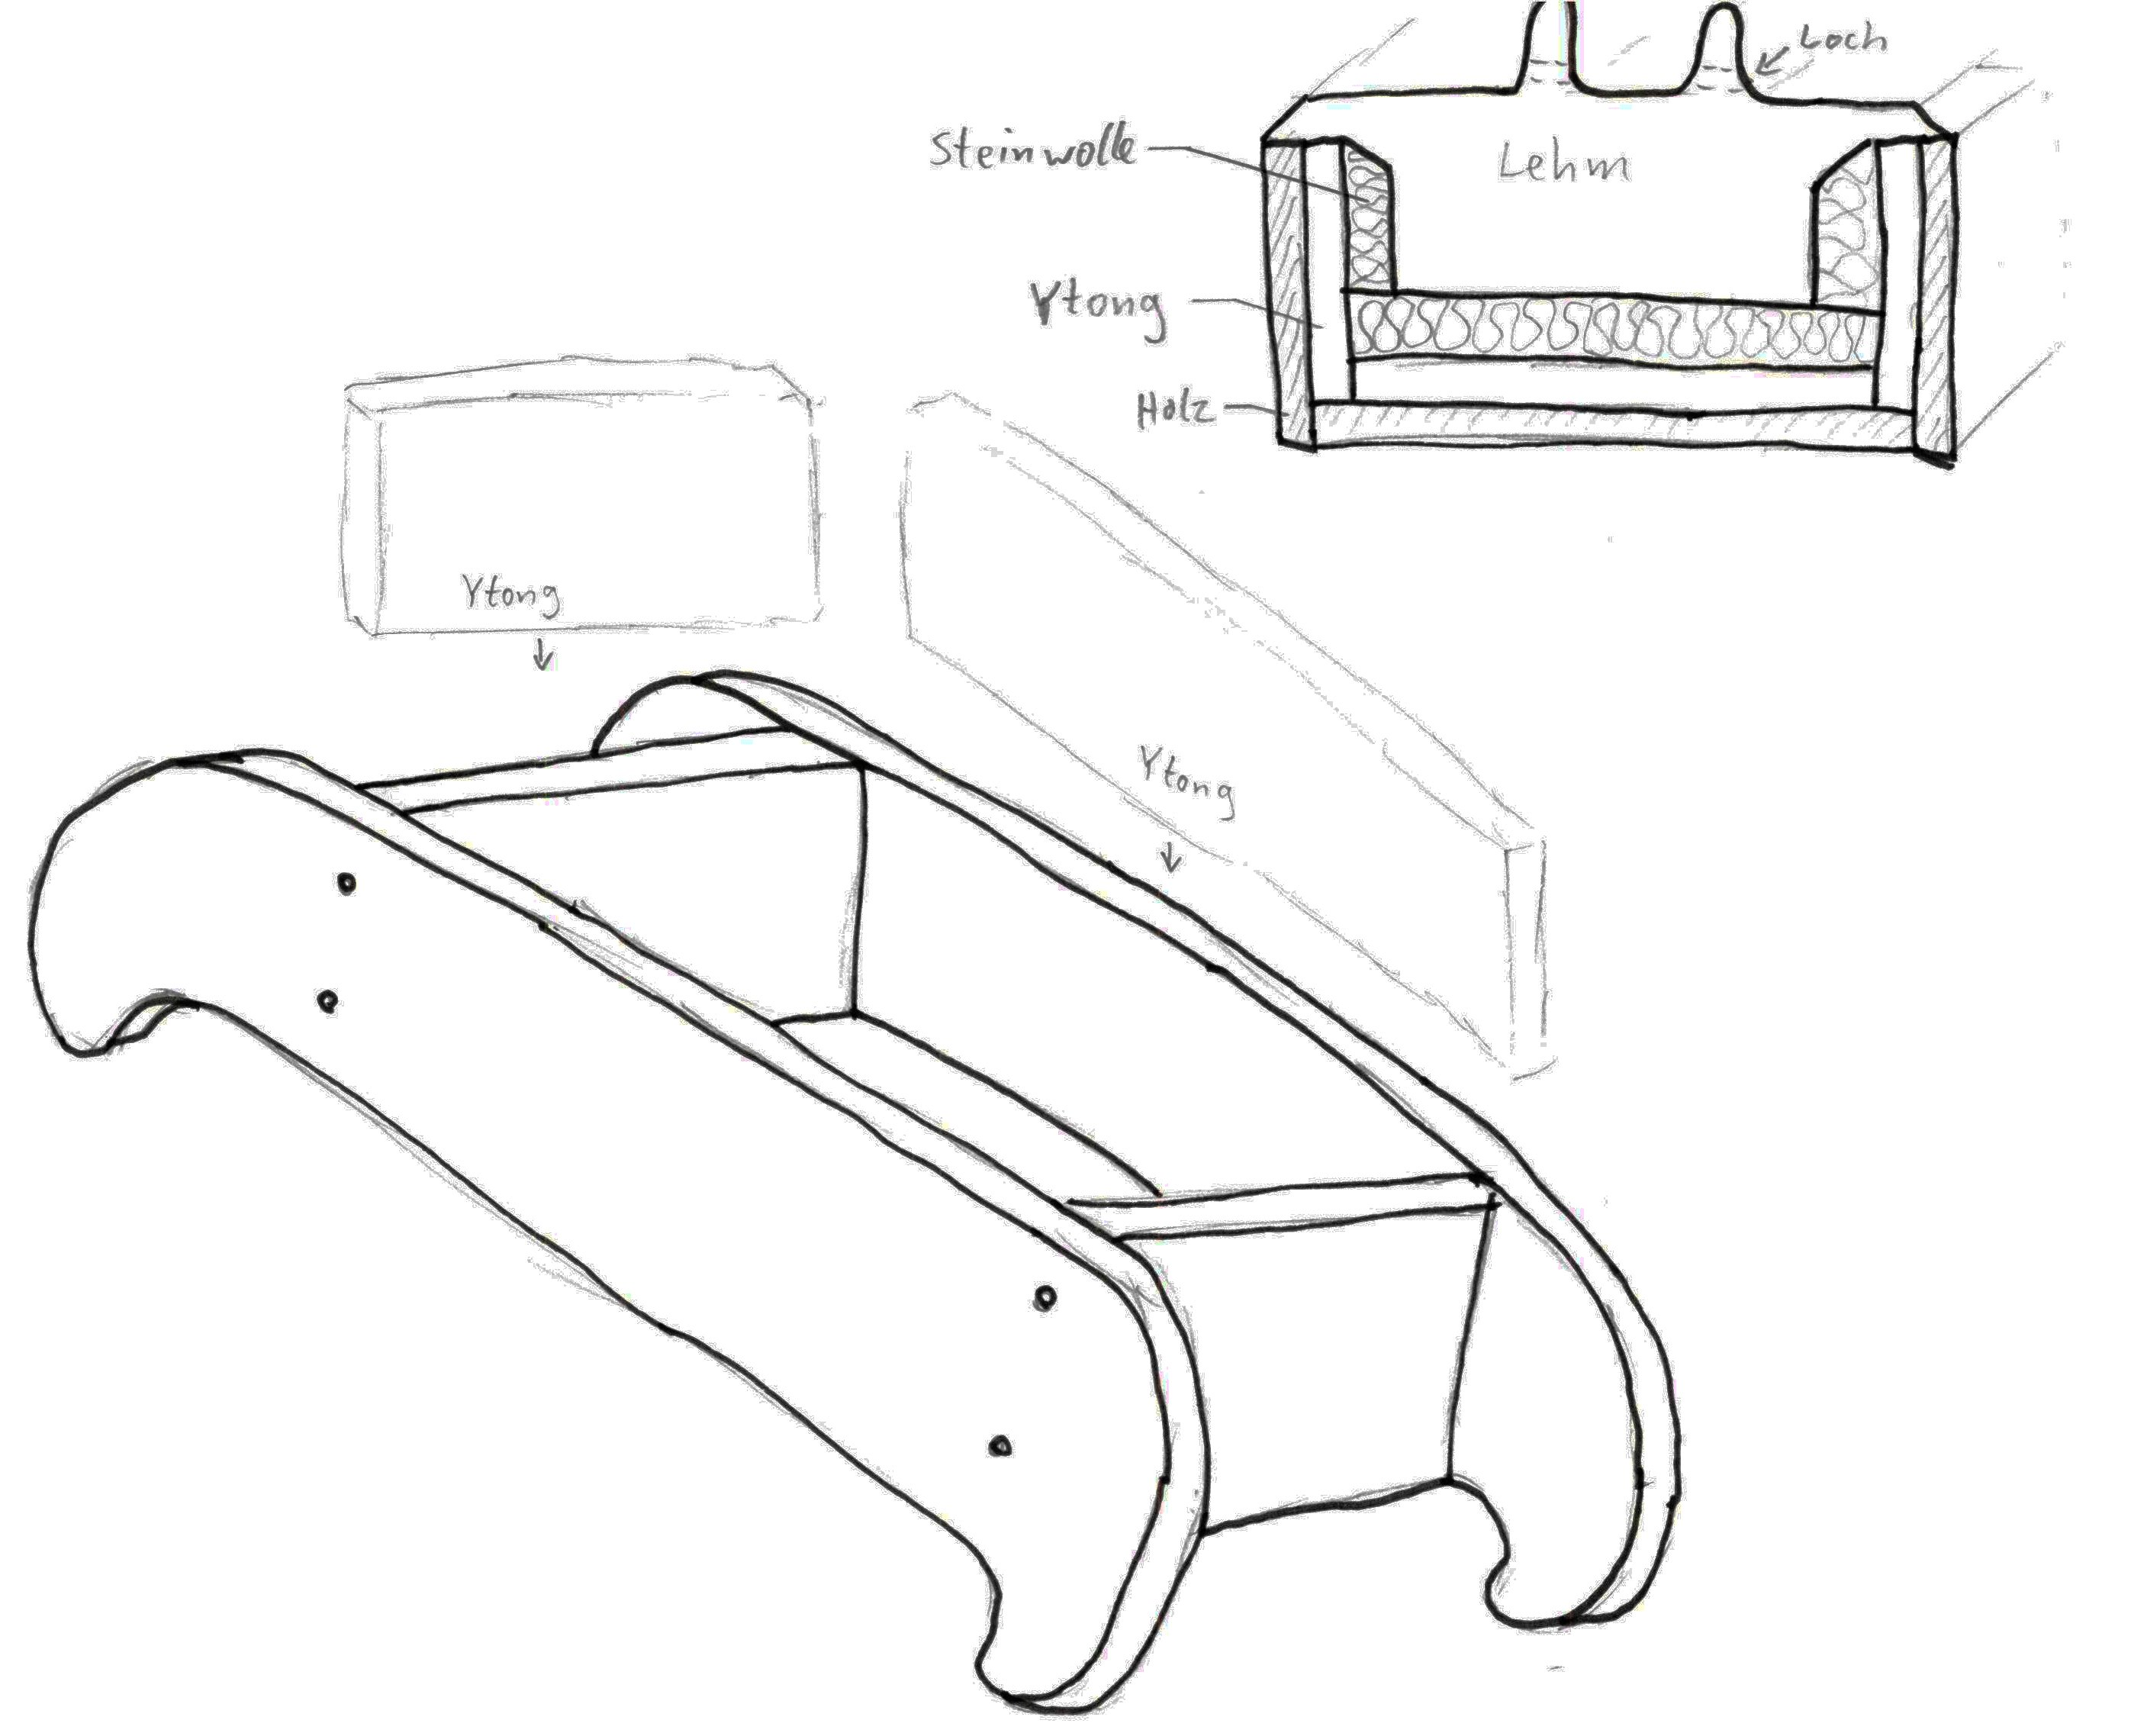 attachment:Larp-Esse_Aufbauprinzip.jpg